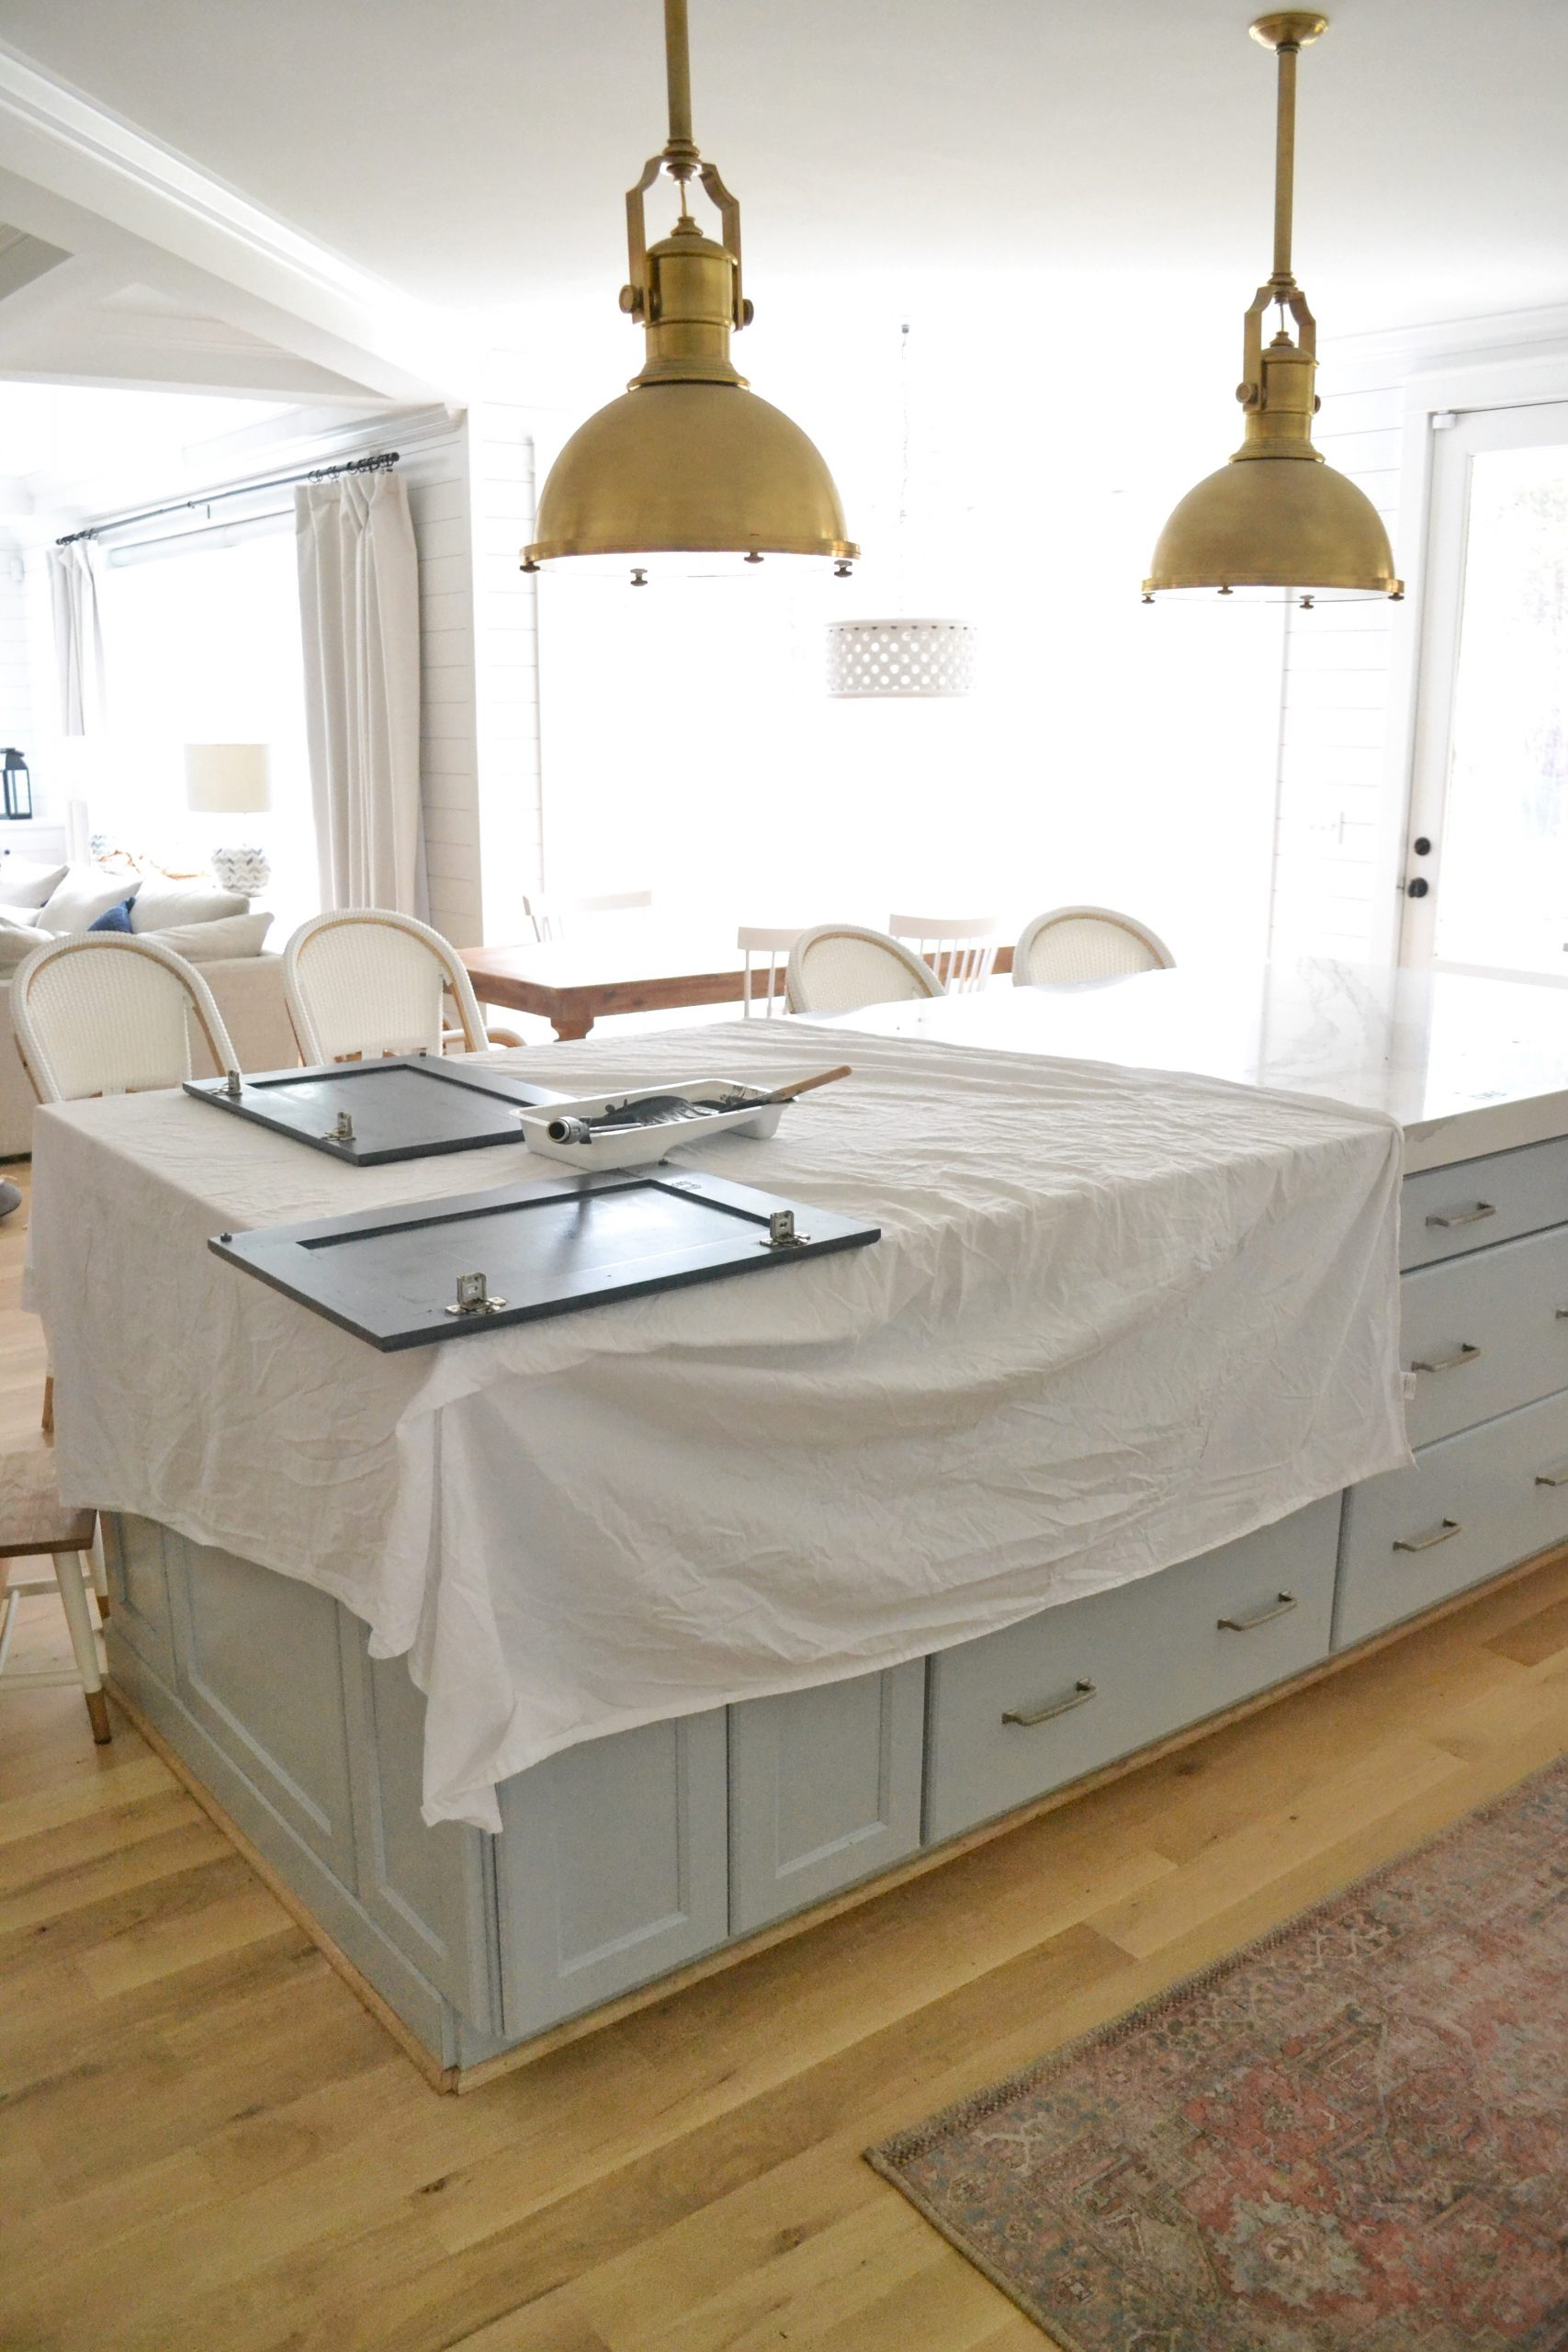 kitchen covered in sheets with painted bathroom cabinet on top